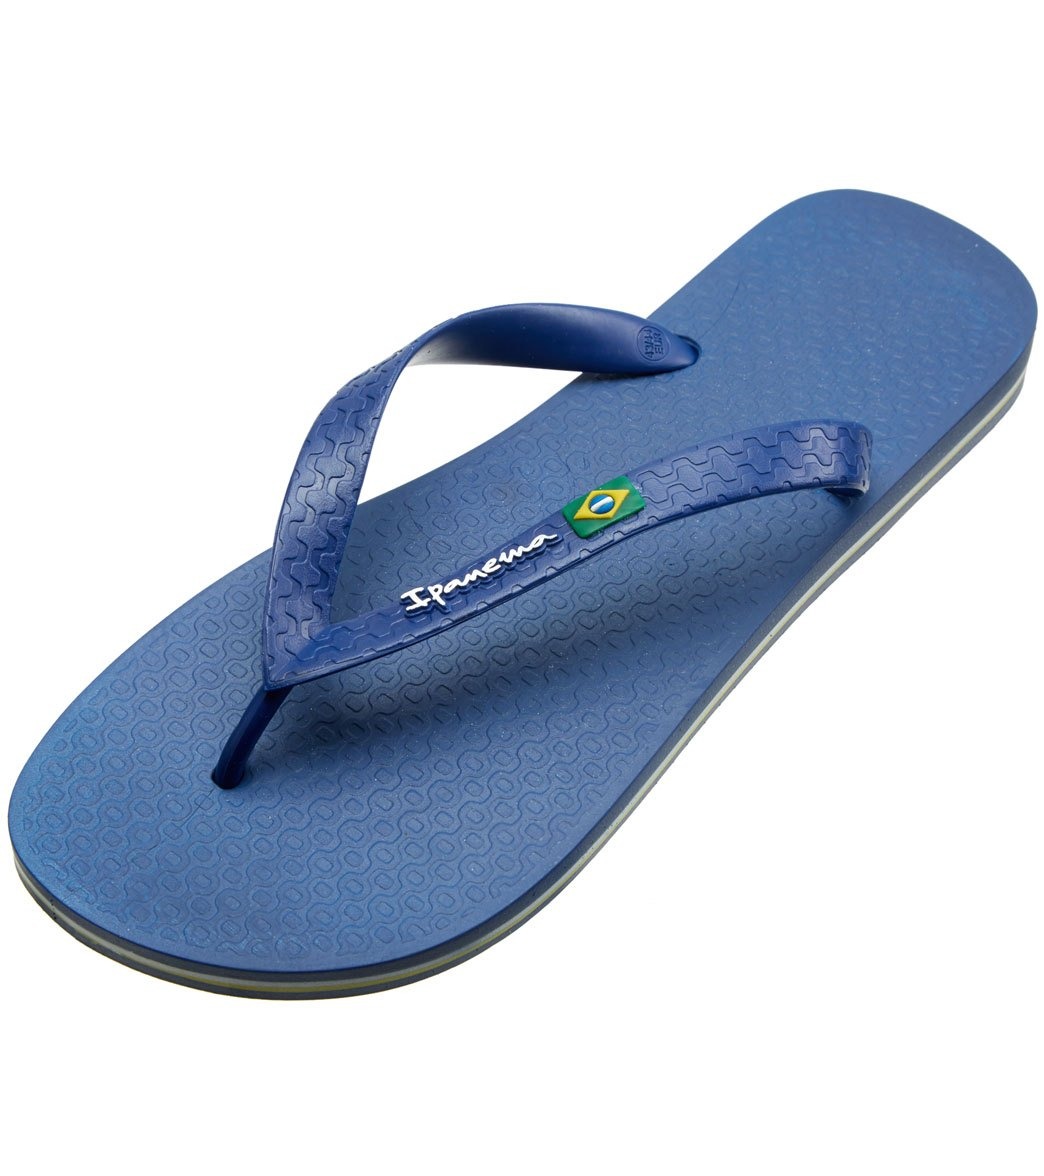 11d3463d2938c1 Ipanema Men s Classic Brazil II Flip Flop at SwimOutlet.com